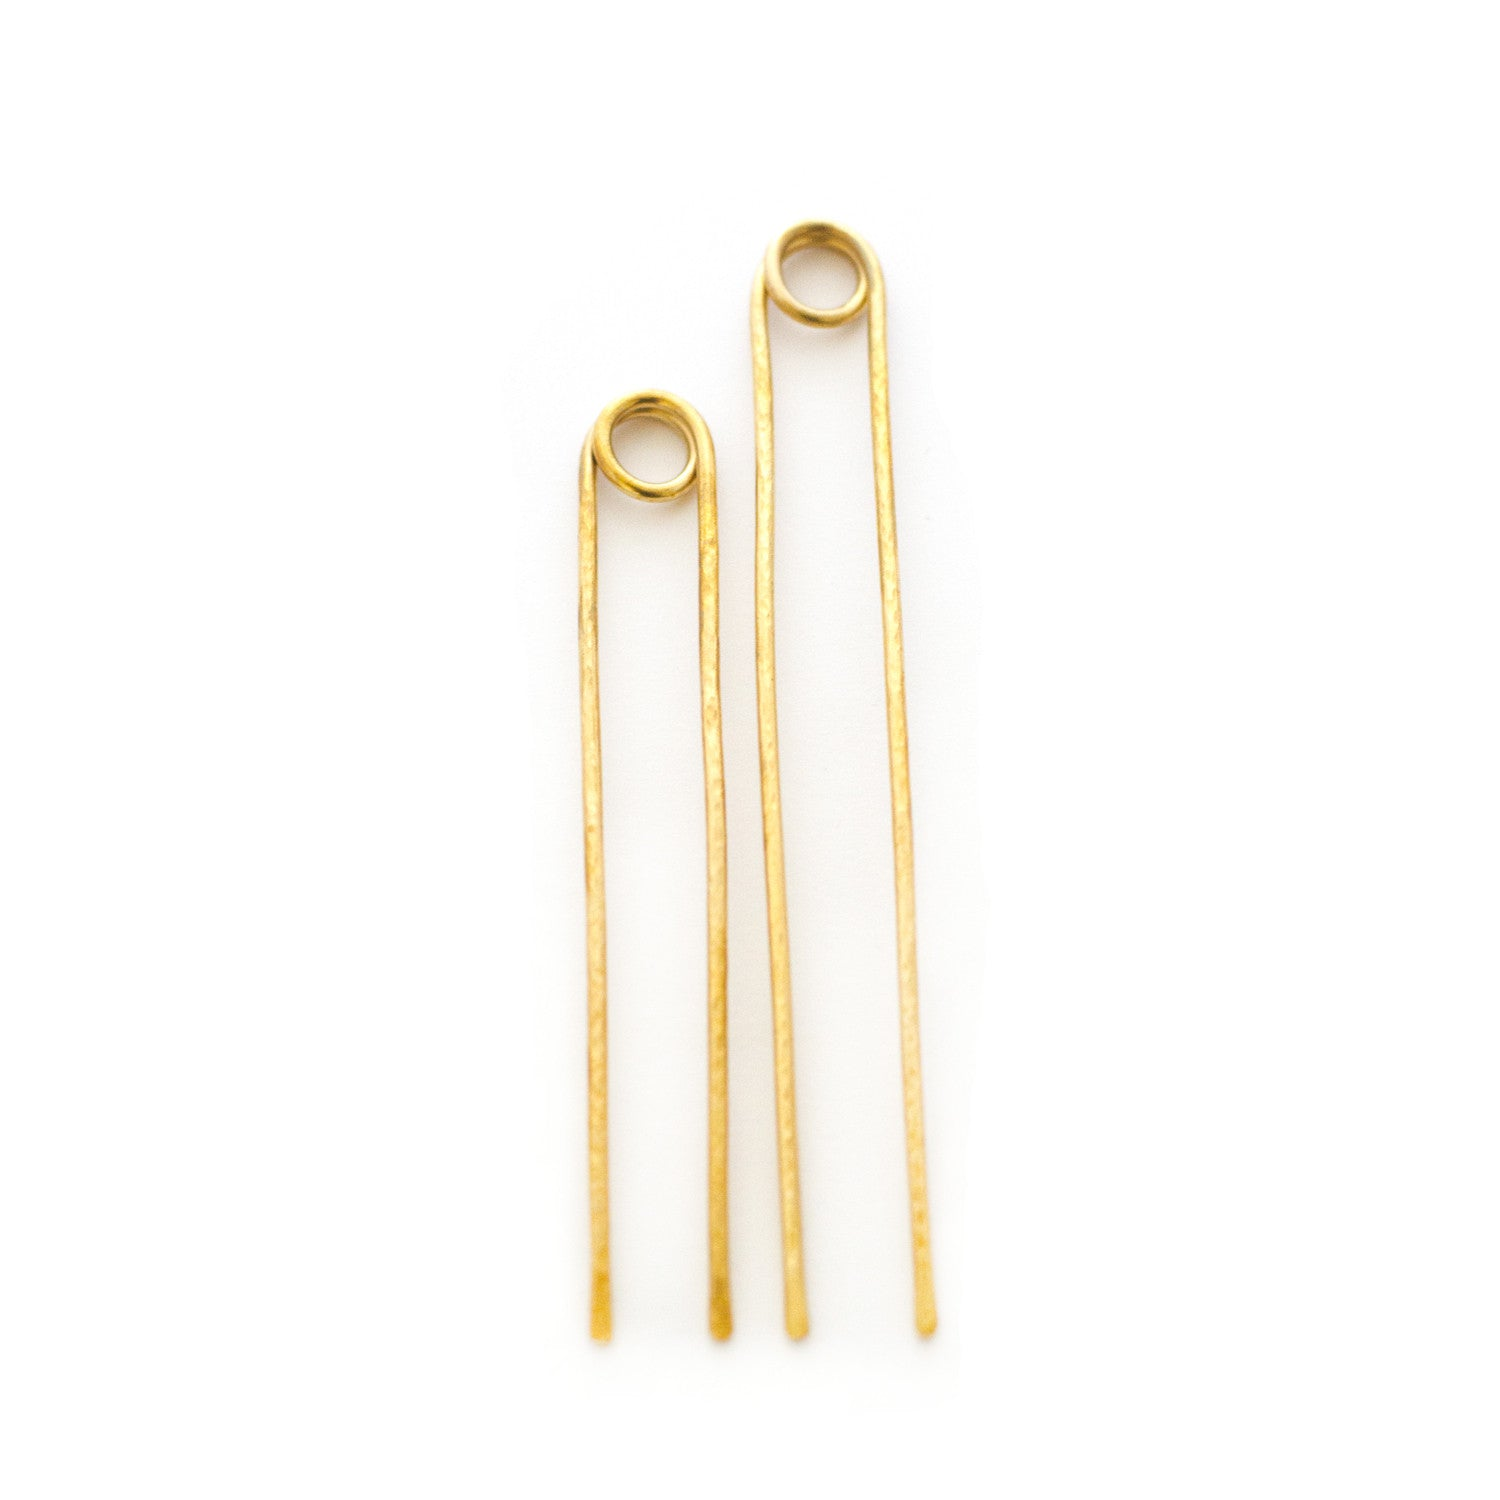 textured loop brass hair pins for buns